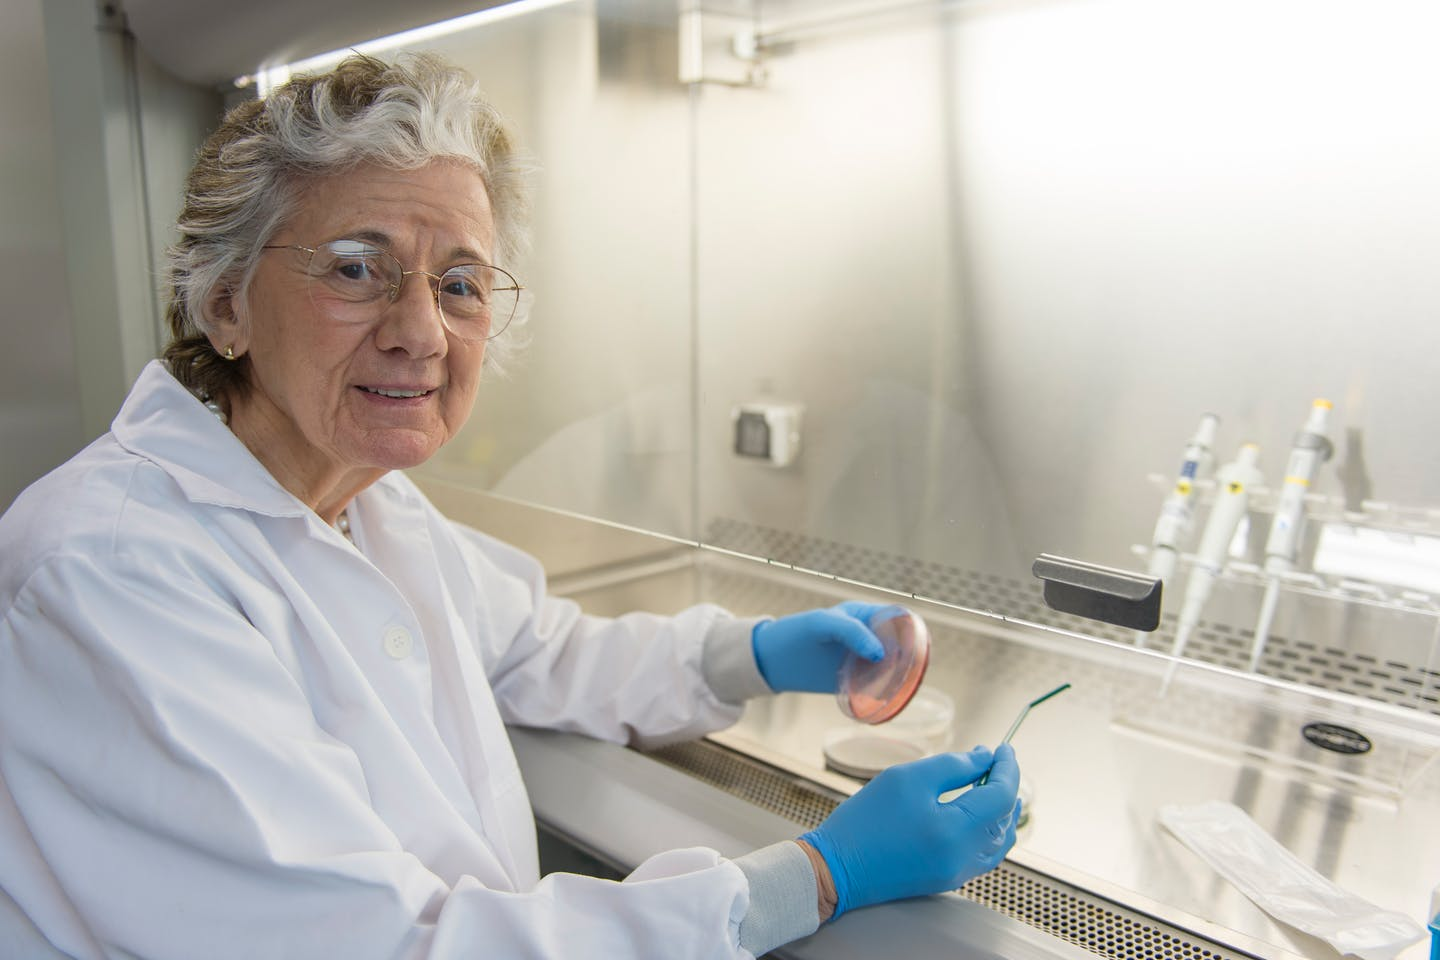 American microbiologist Rita Colwell